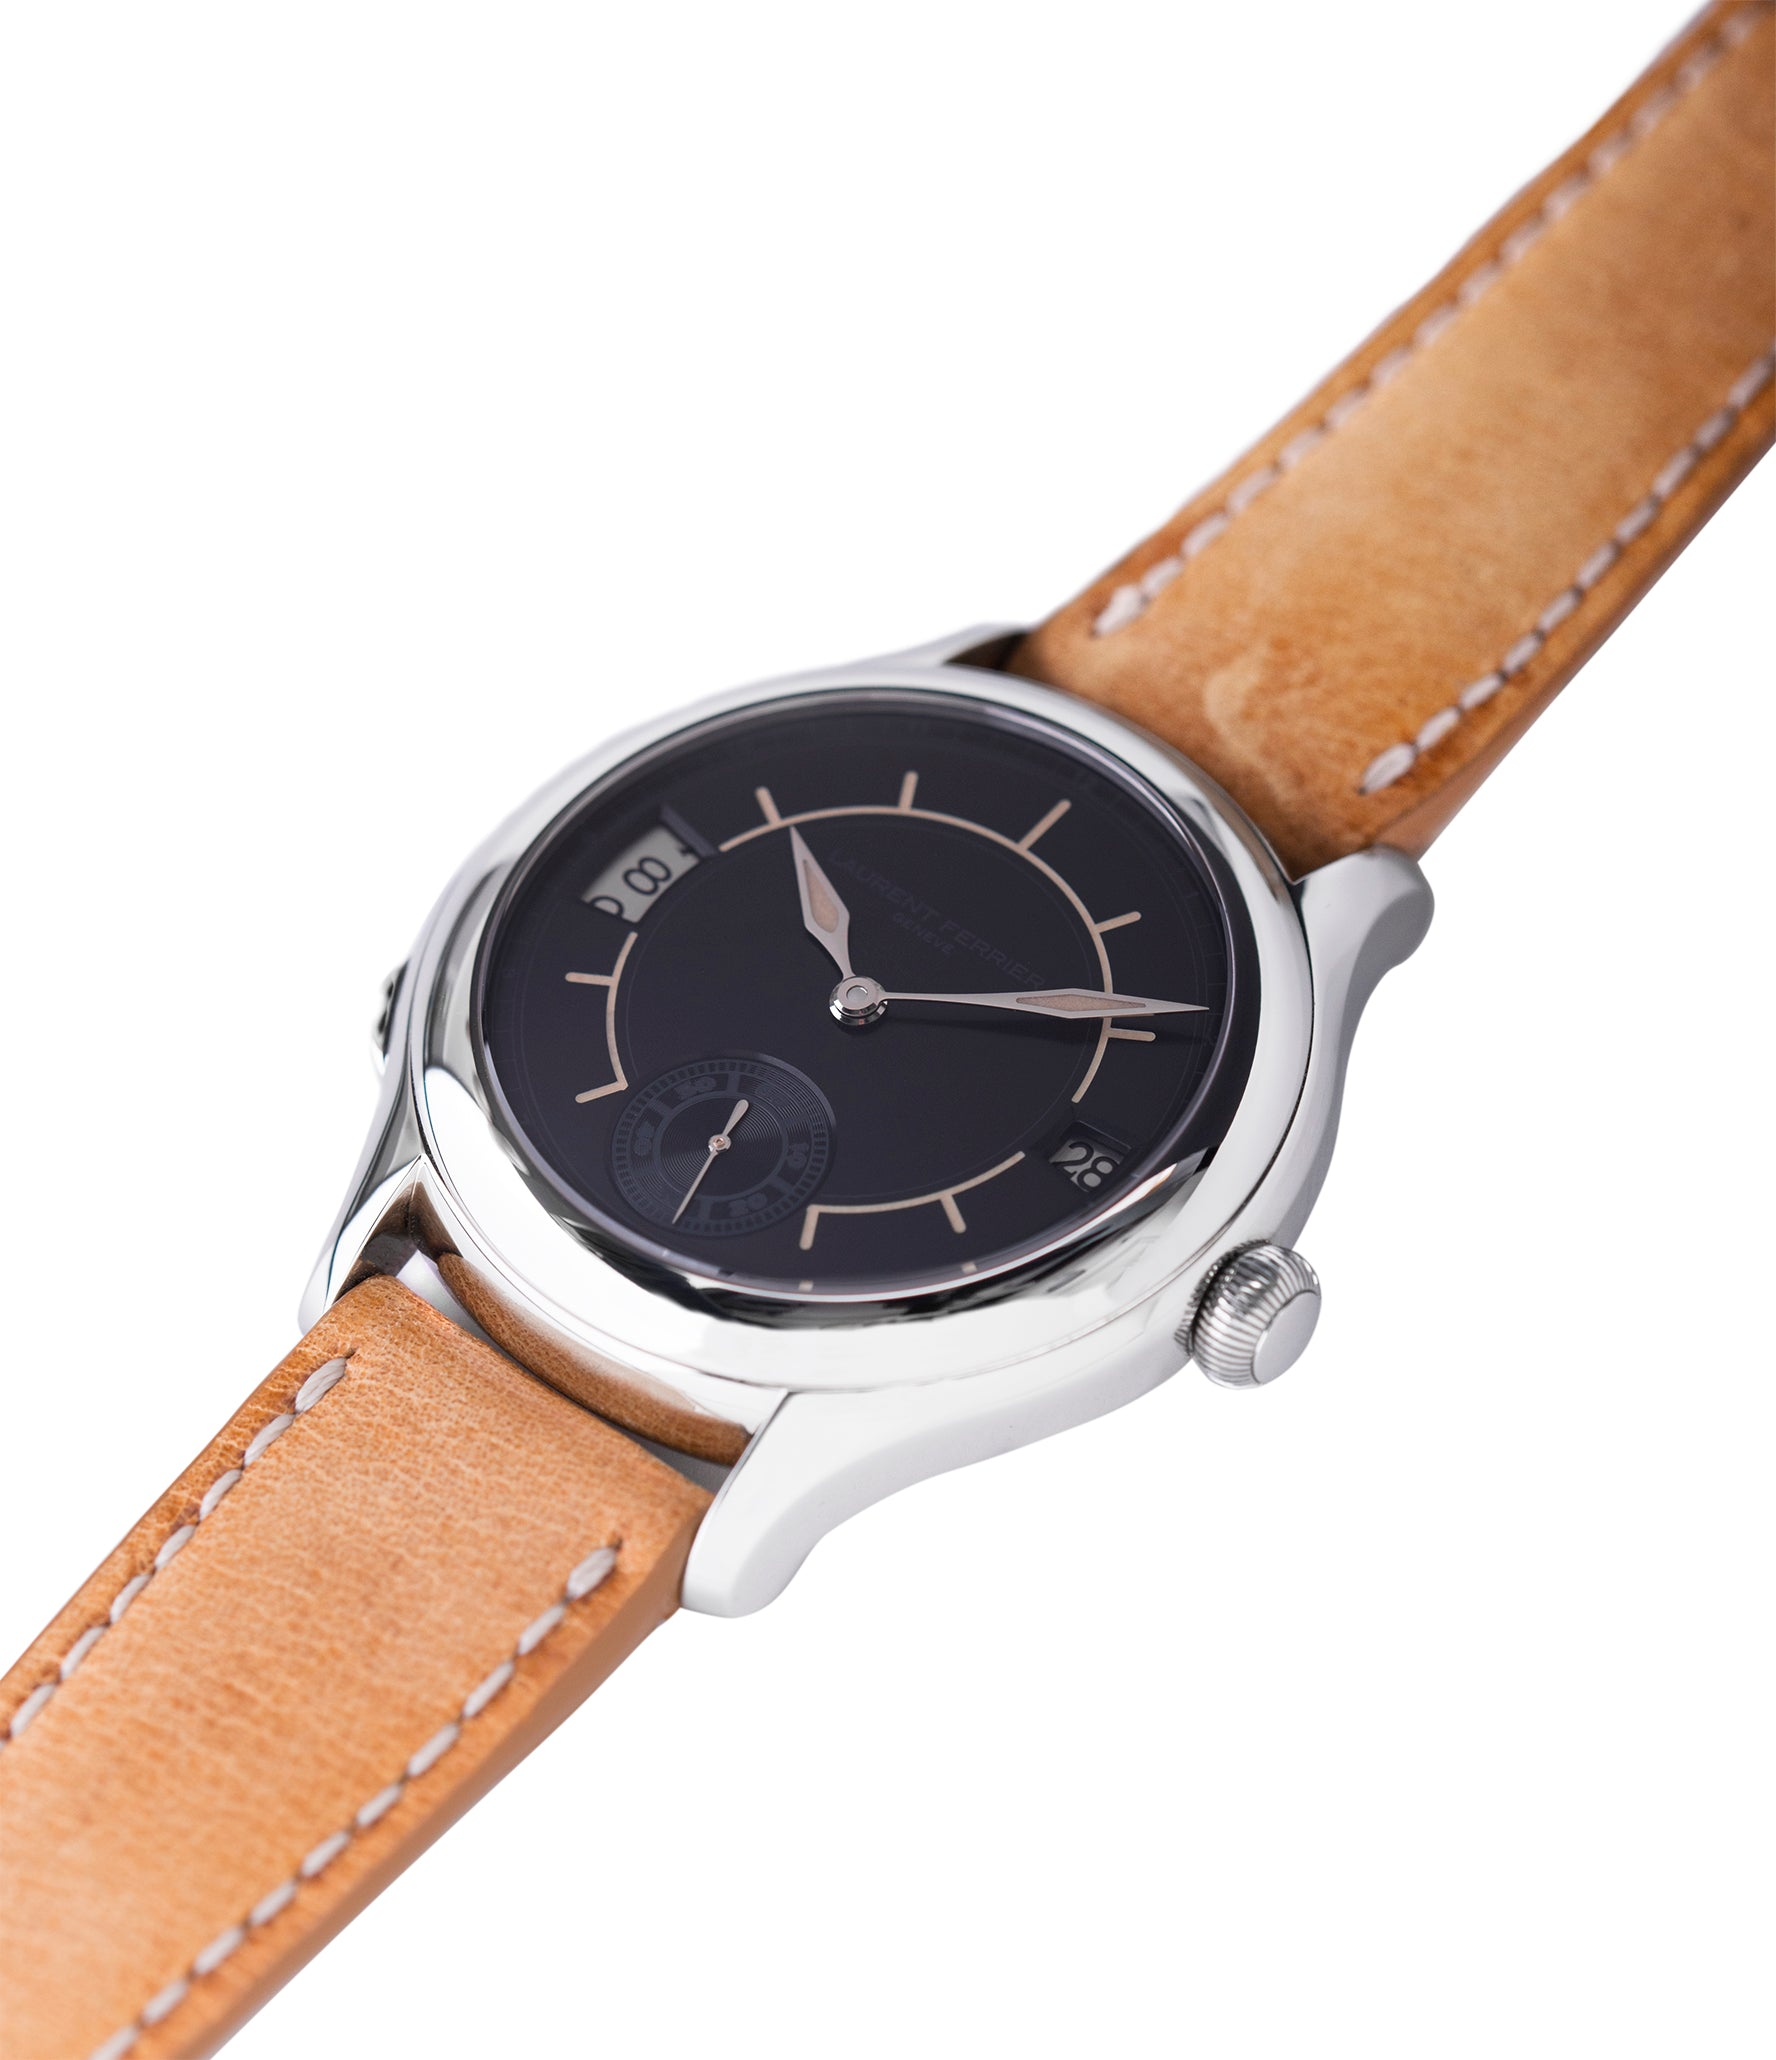 selling preowned Laurent Ferrier Galet Traveller Boreal steel dual-timezone black dial dress watch for sale online at A Collected Man London approved seller of pre-owned Laurent Ferrier independent watchmakers